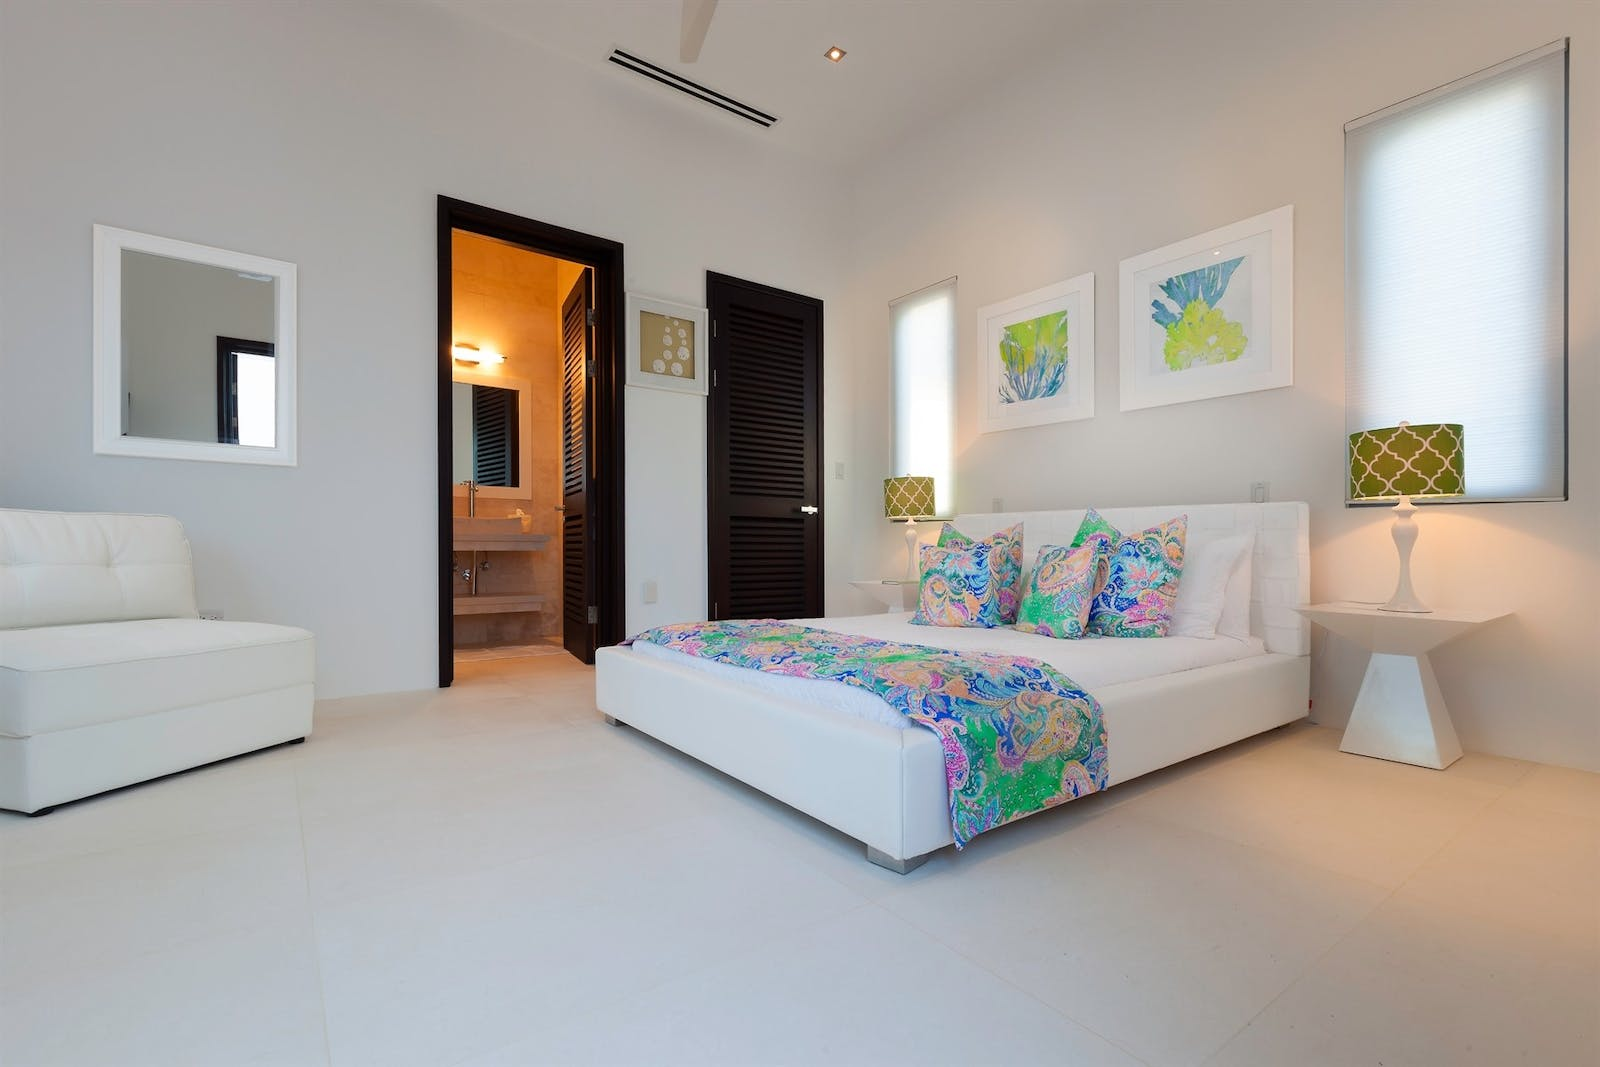 meads bedroom at the beach house anguilla